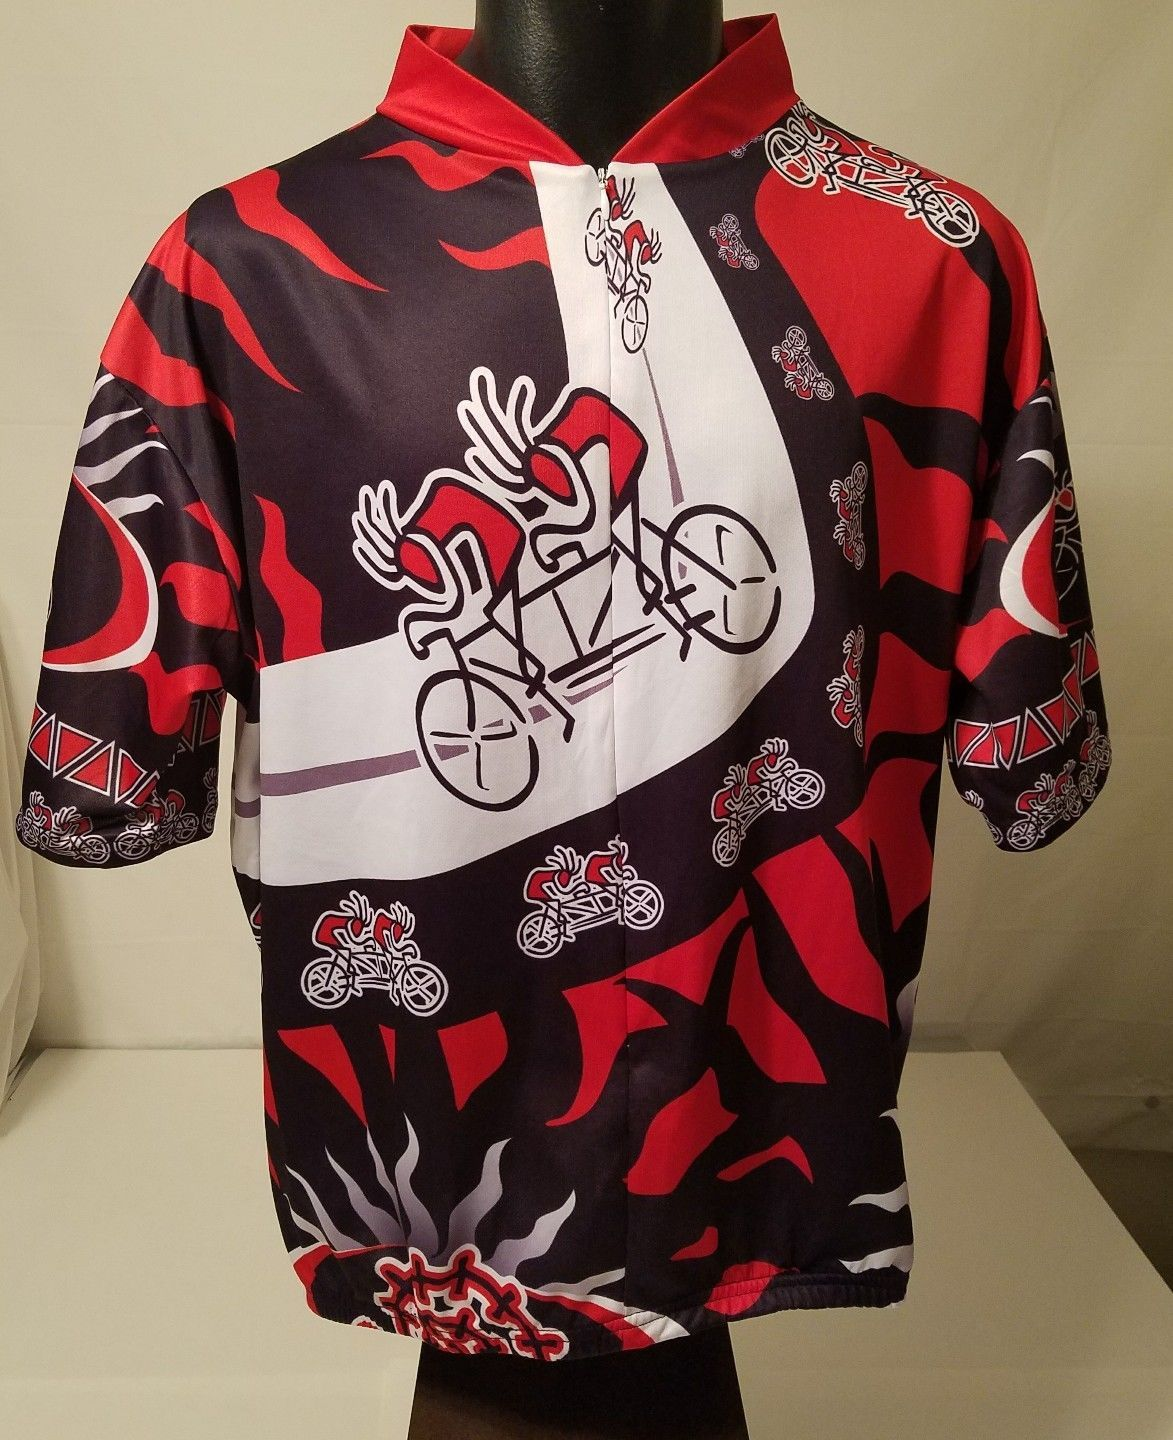 Kucharik Clothing Bike Cycling Bicycle Jersey Shirt Mens Size 4XL Red Black